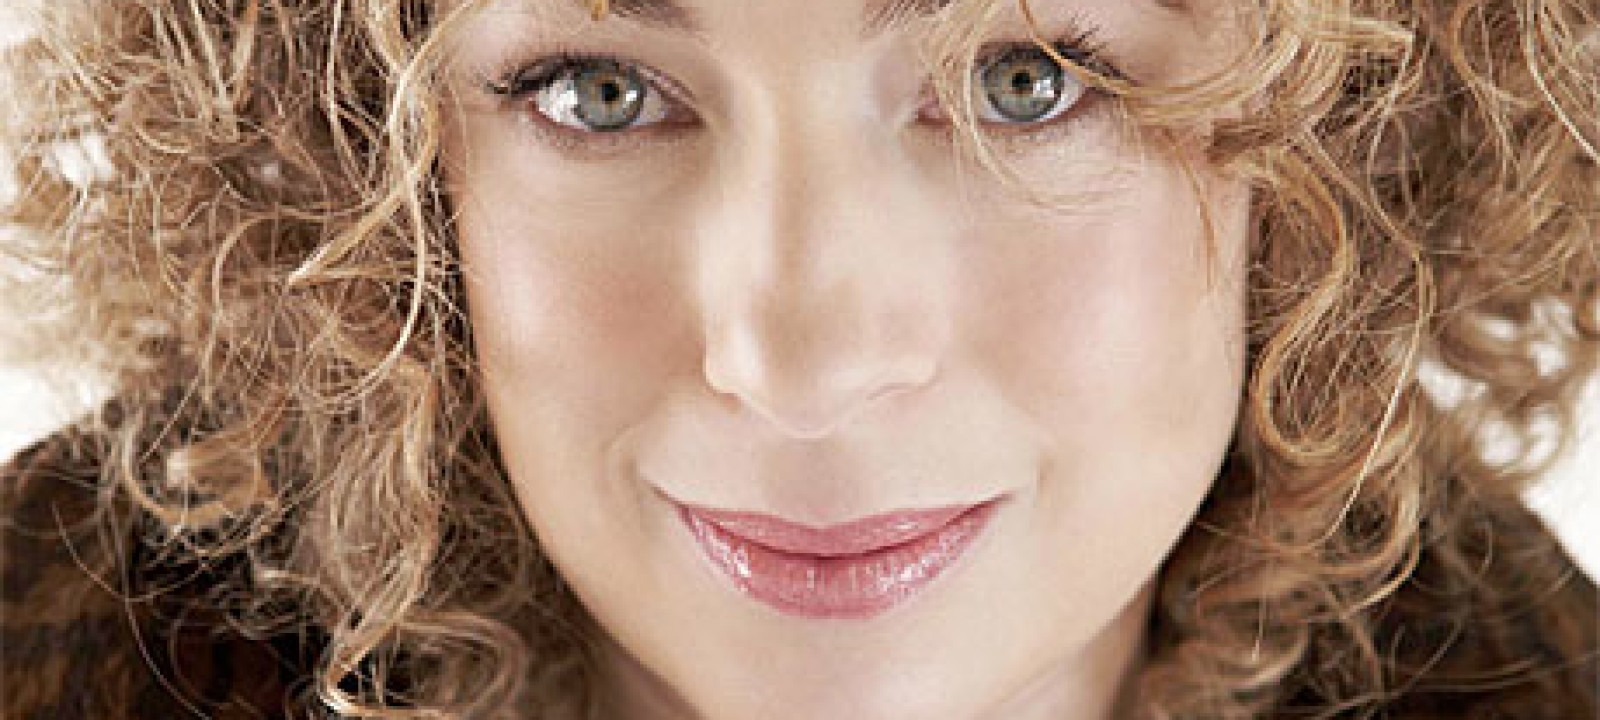 RIver Song, played with coquettish glee by Alex Kingston